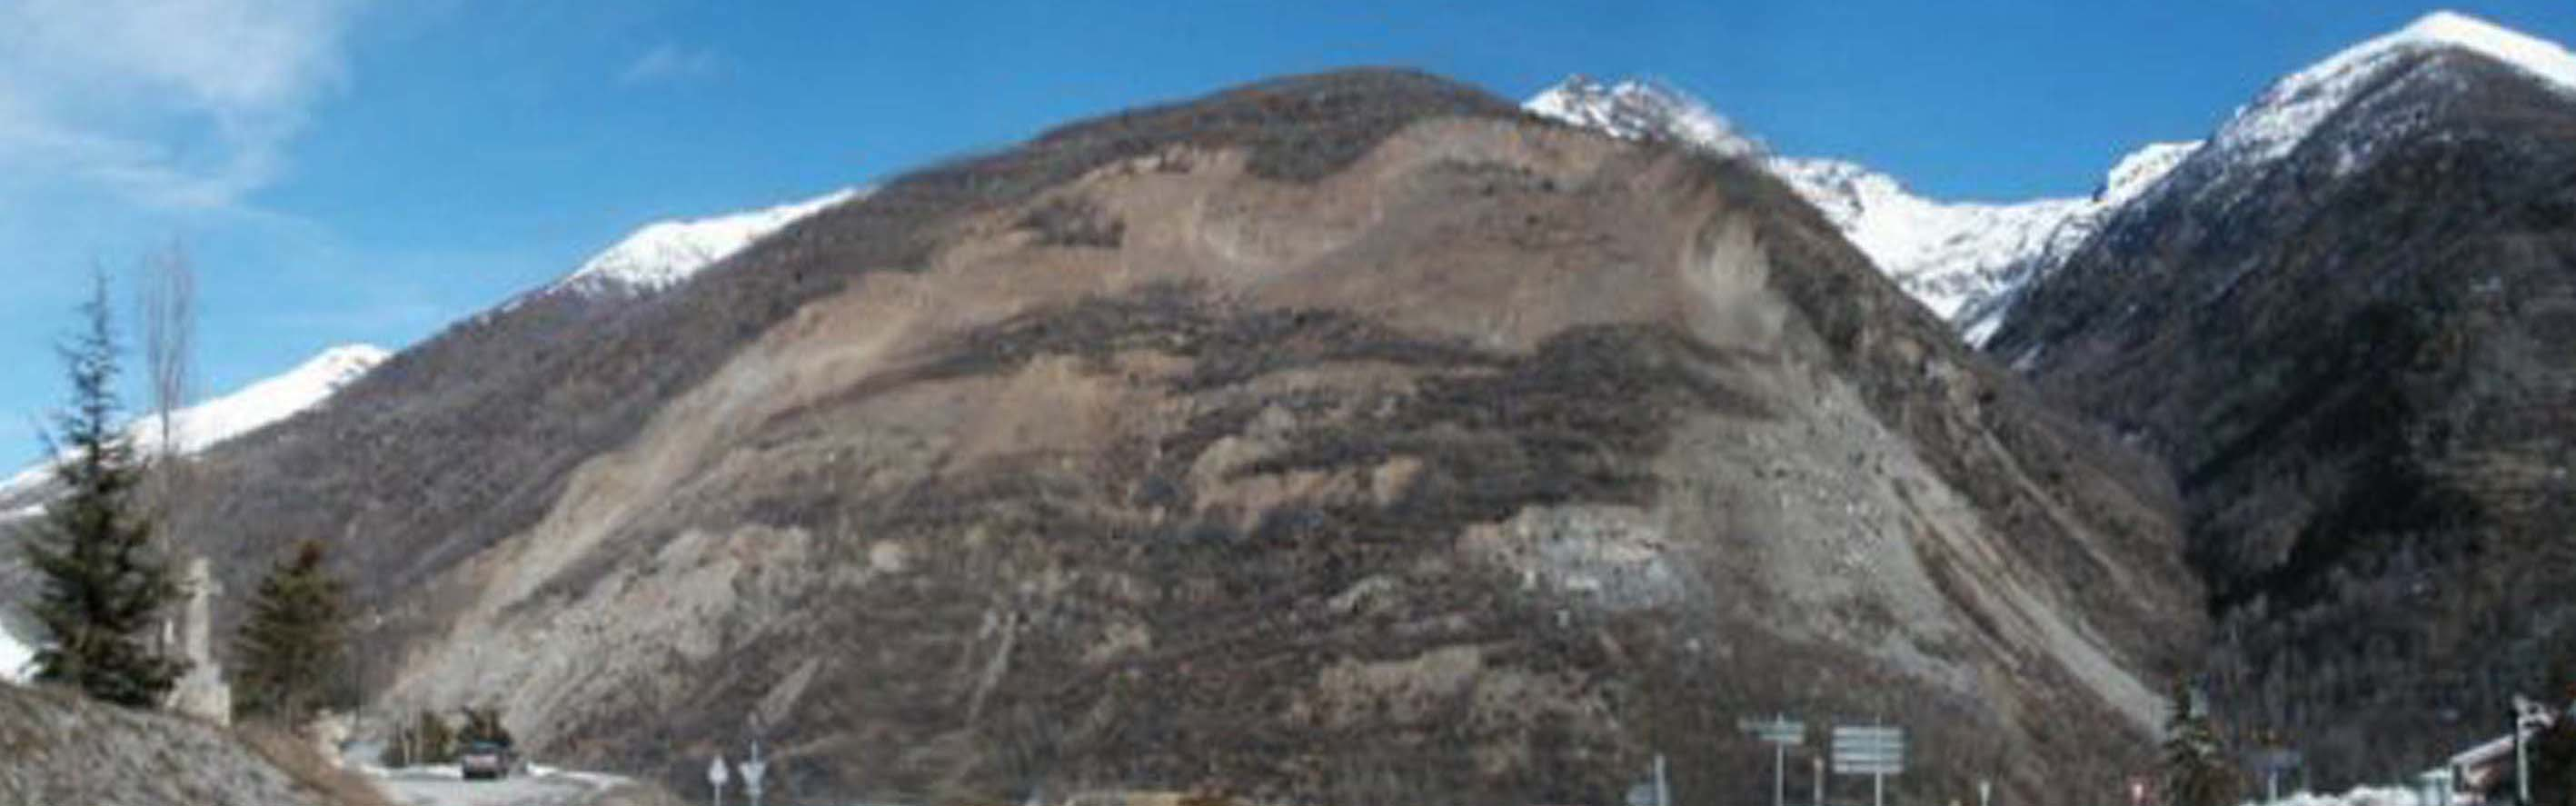 La Clapîère landslide: view of the unstable slope in 1995